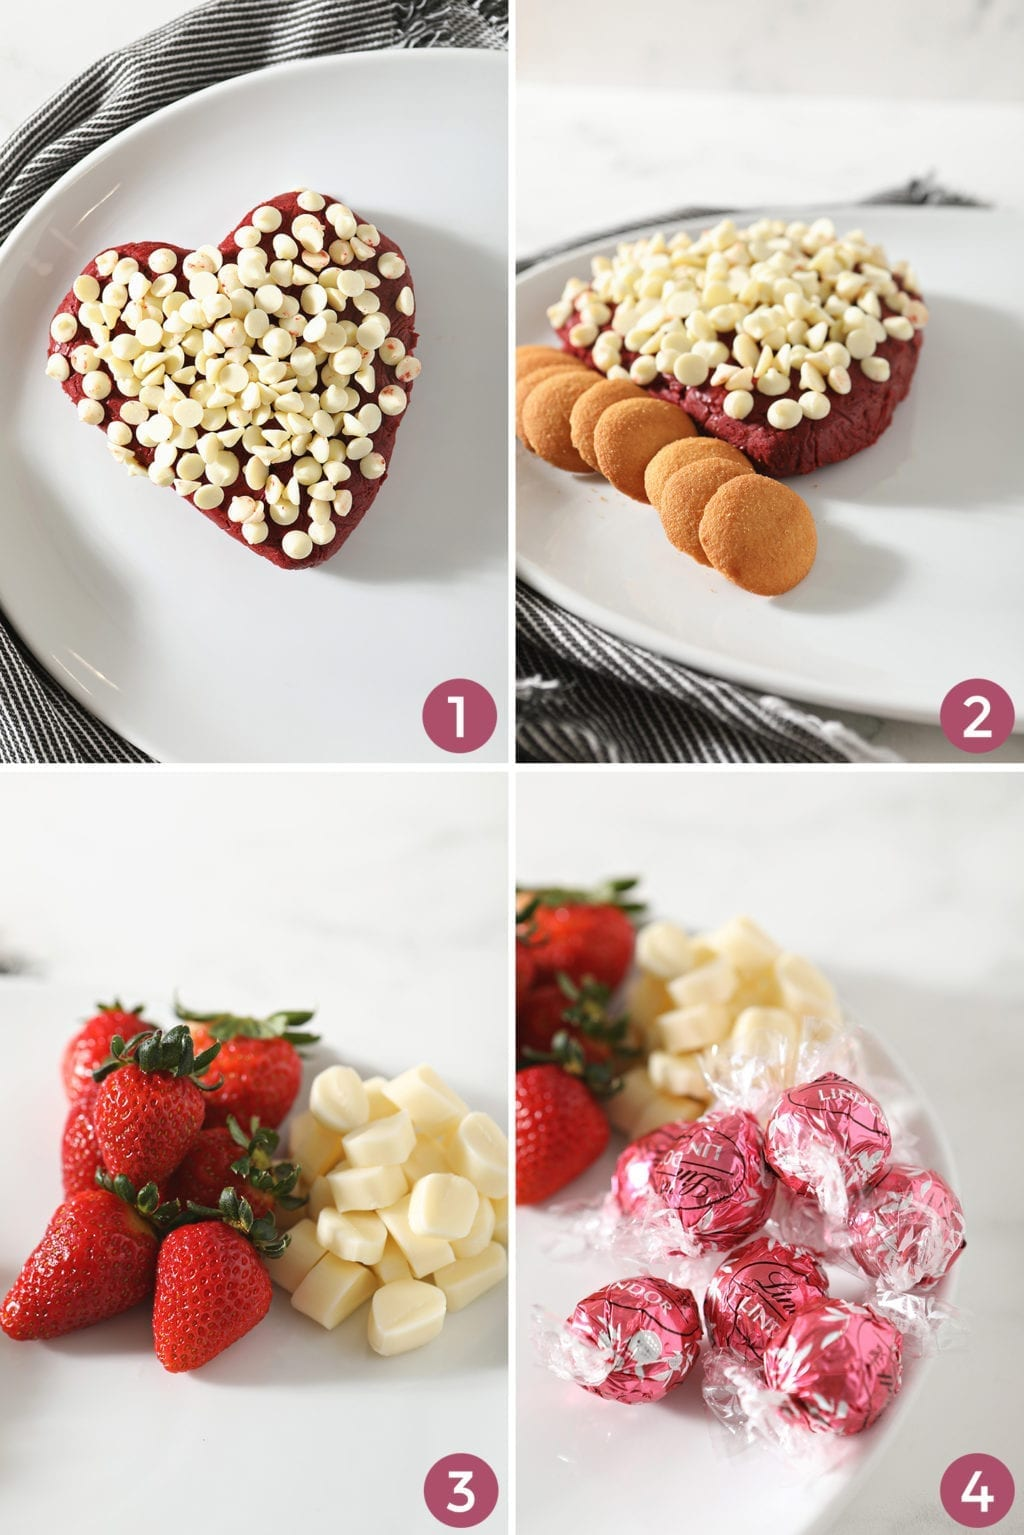 A collage of four images shows how to place ingredients onto the tray to make the board